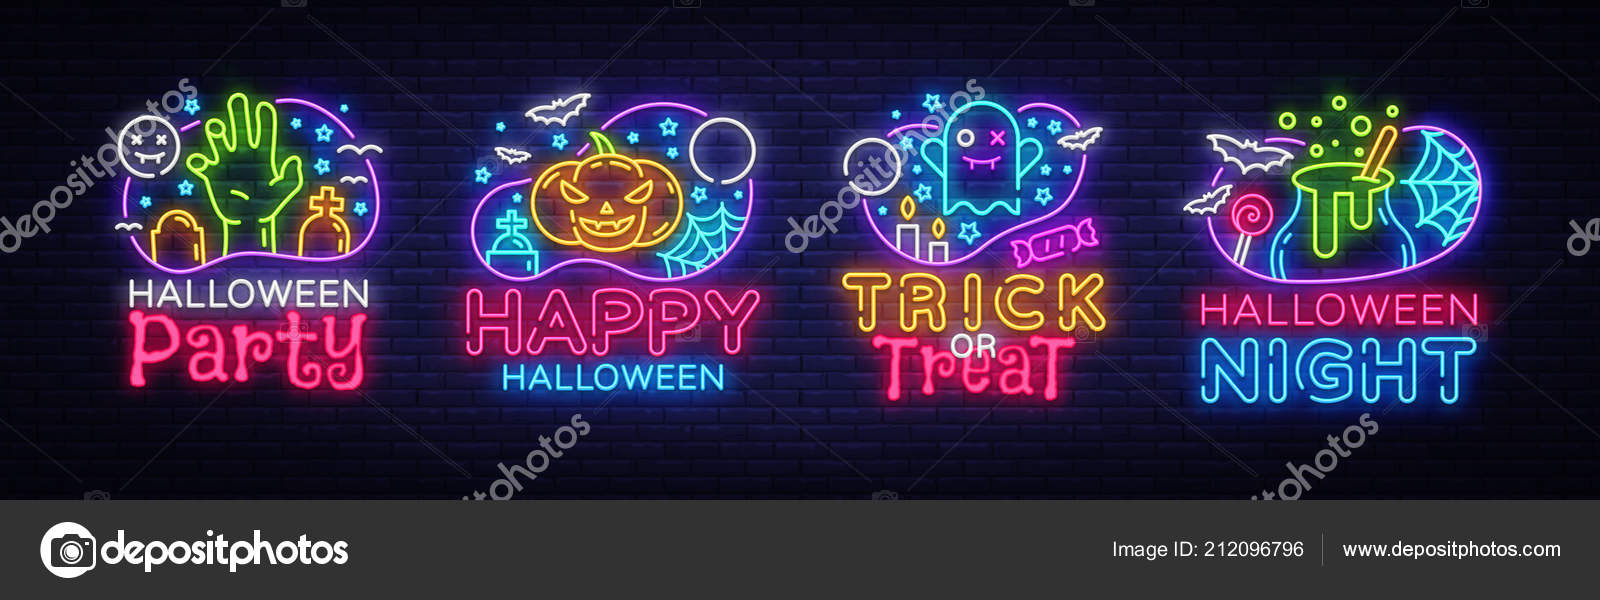 halloween neon sign collection vector halloween party design